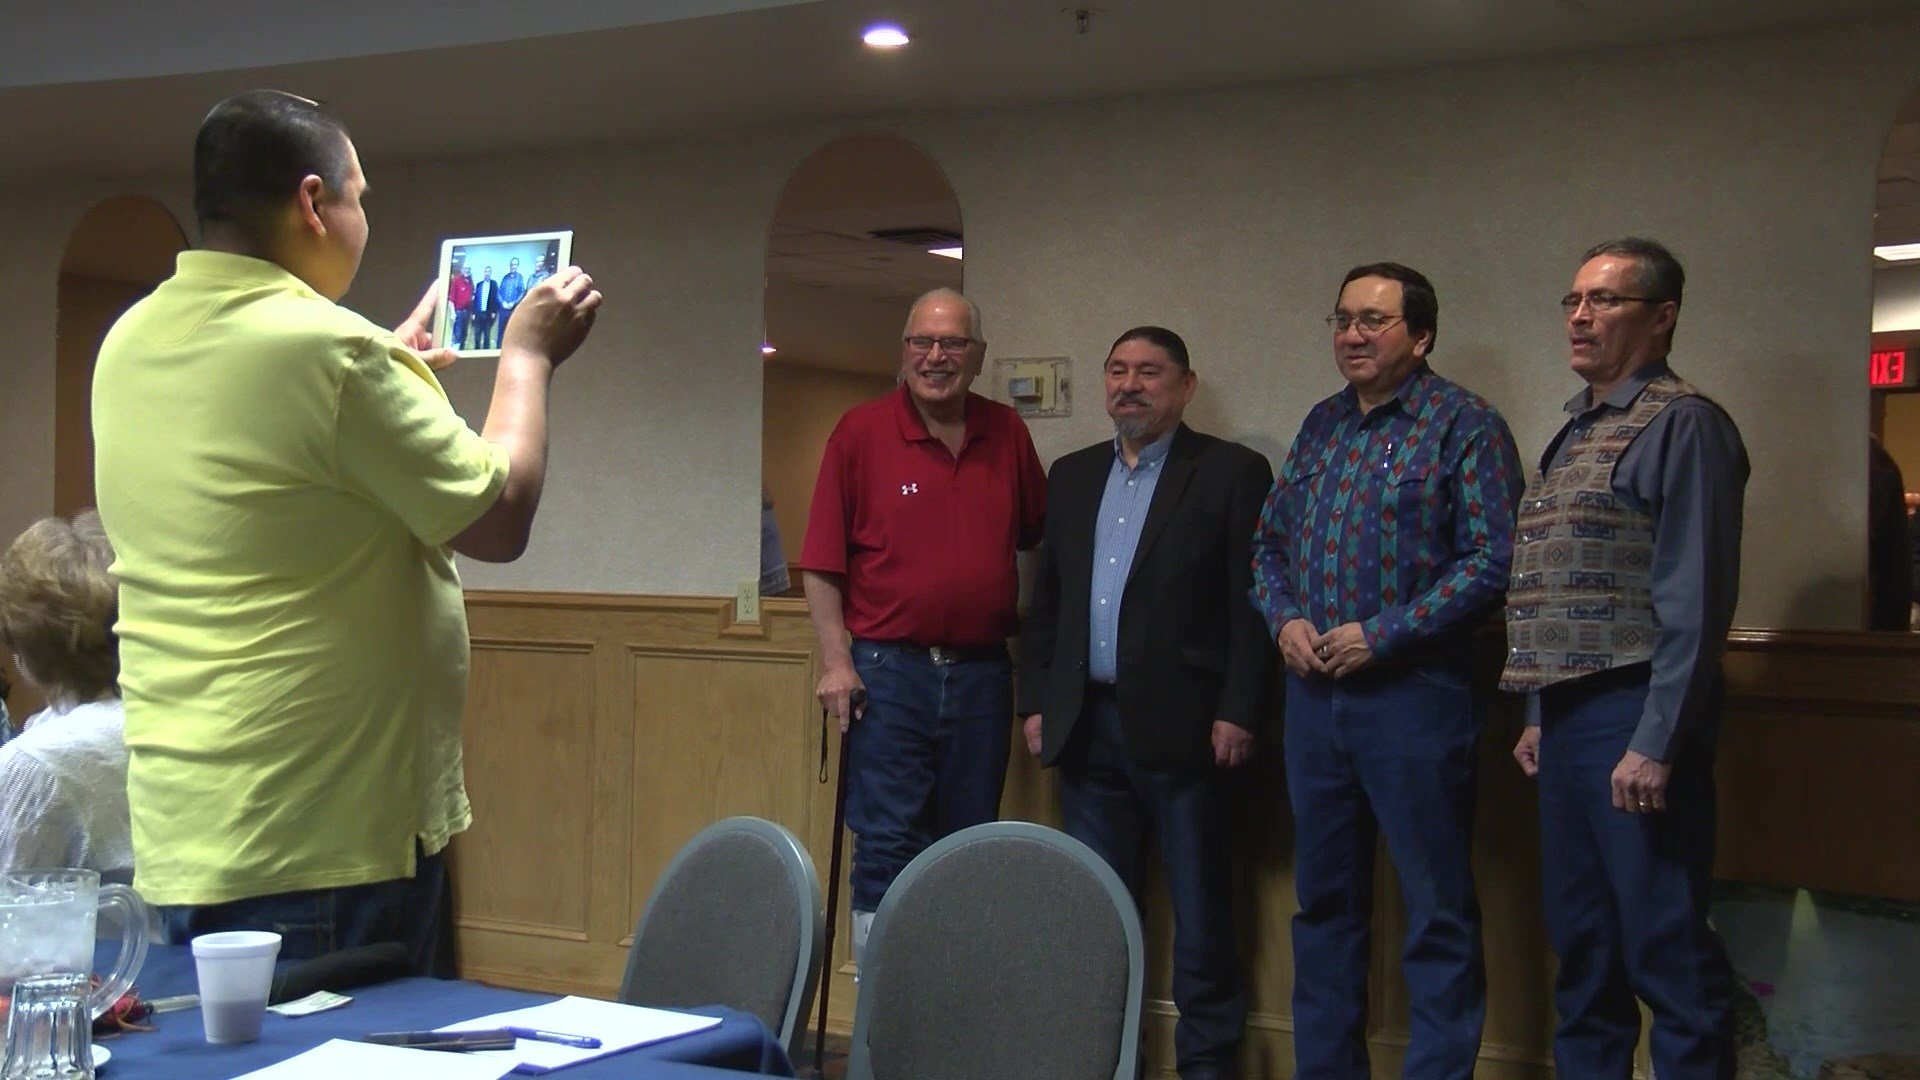 Tribal leaders held a press conference at the Holiday Inn in Great Falls on Friday morning.